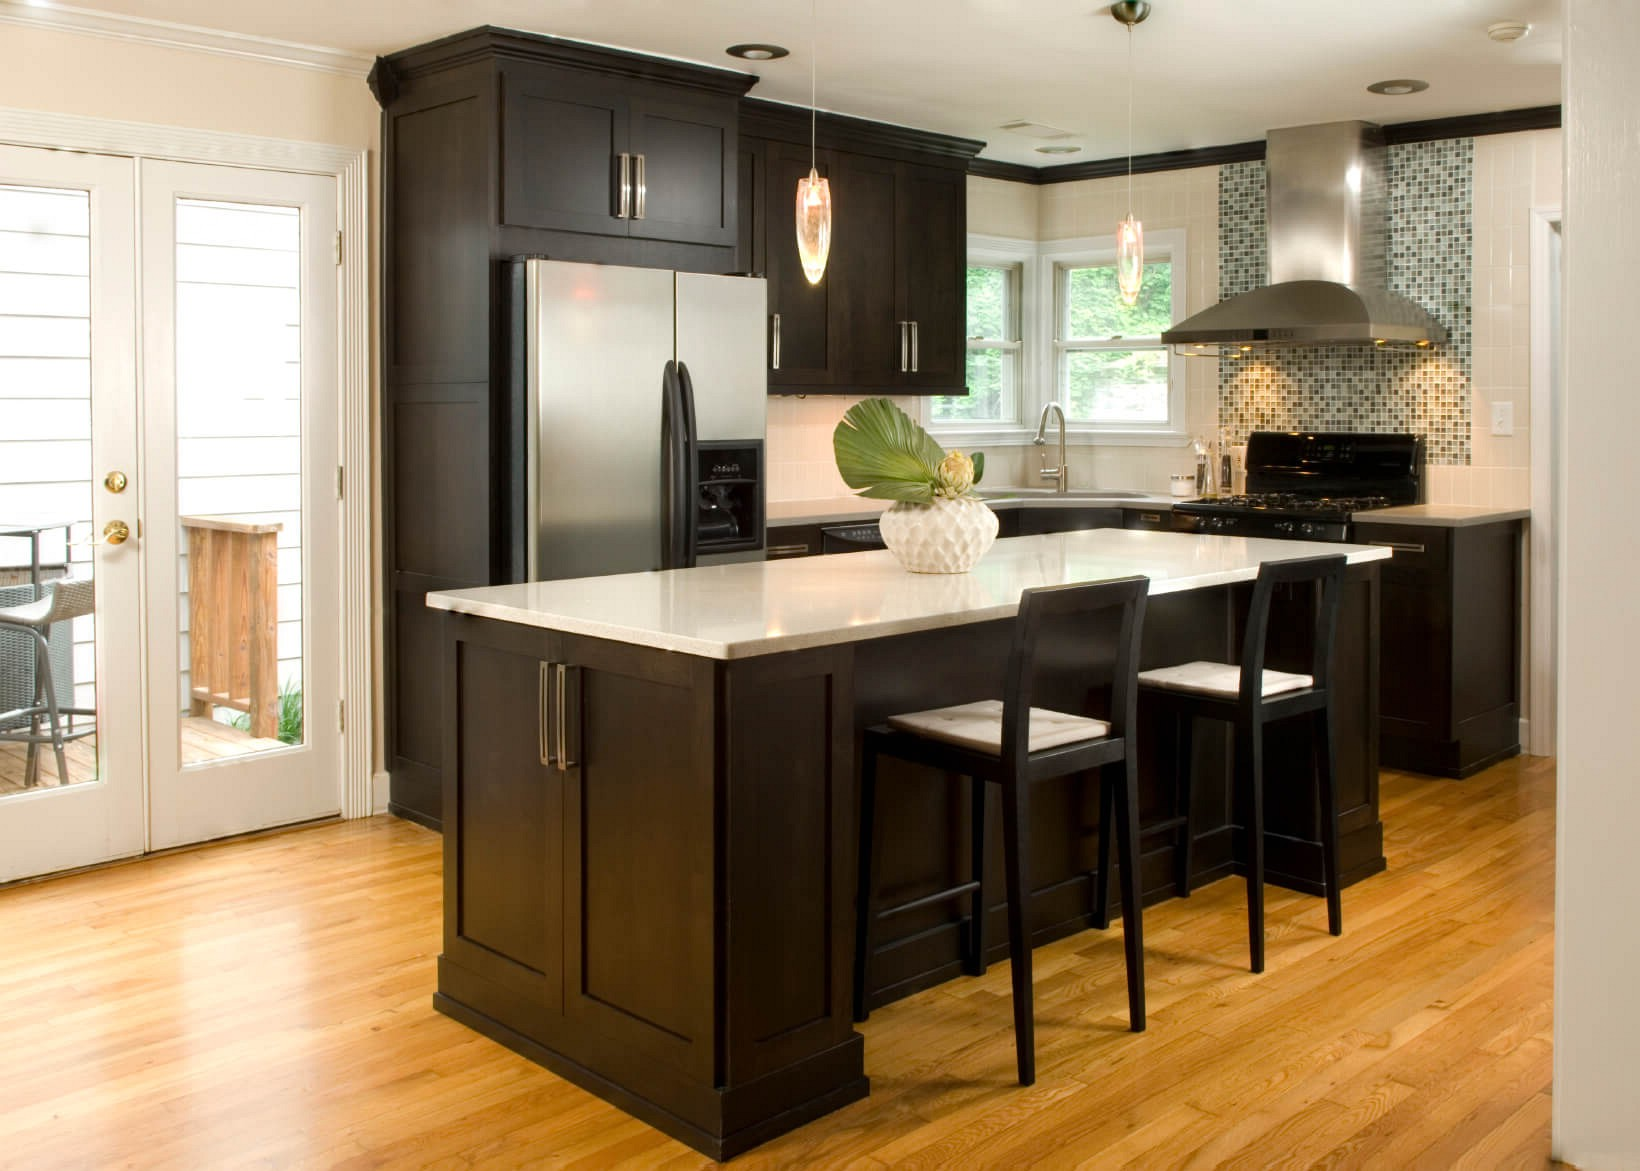 Kitchen design tips for dark kitchen cabinets for Black kitchen cabinets small kitchen